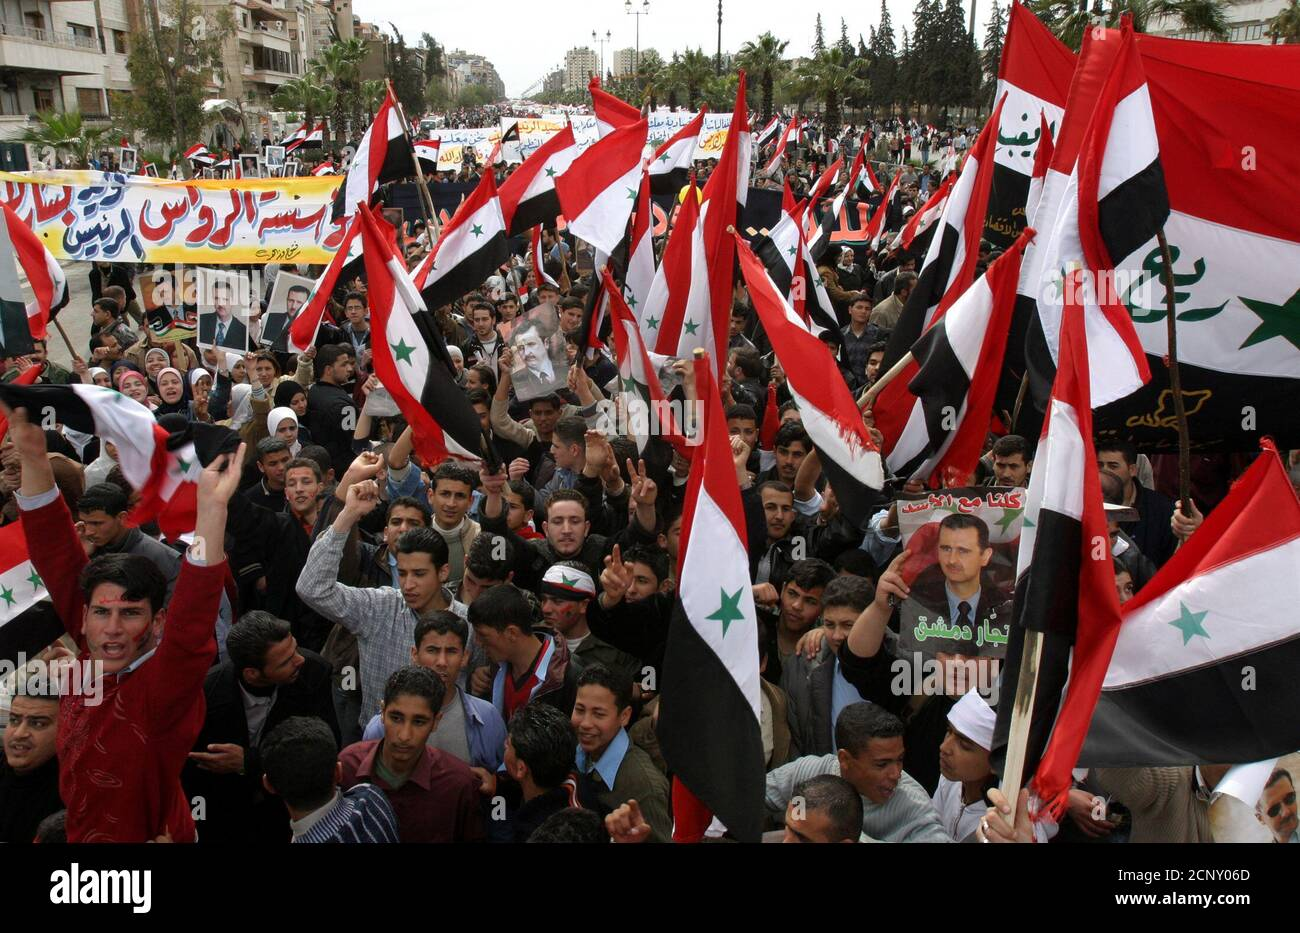 """Tens of thousands of Syrians wave flags during a rally in support of Syria's President Bashar al-Assad, who is facing international pressure over neighbouring Lebanon, in central Damascus March 9, 2005. """"With our souls and blood we sacrifice ourselves for Assad,"""" chanted the crowds, waving Syrian flags and carrying pictures of their young president, who has pledged to pull his troops out of Lebanon following weeks of anti-Syrian protests in Beirut. REUTERS/Khaled al-Hariri  kh/CCK Stock Photo"""